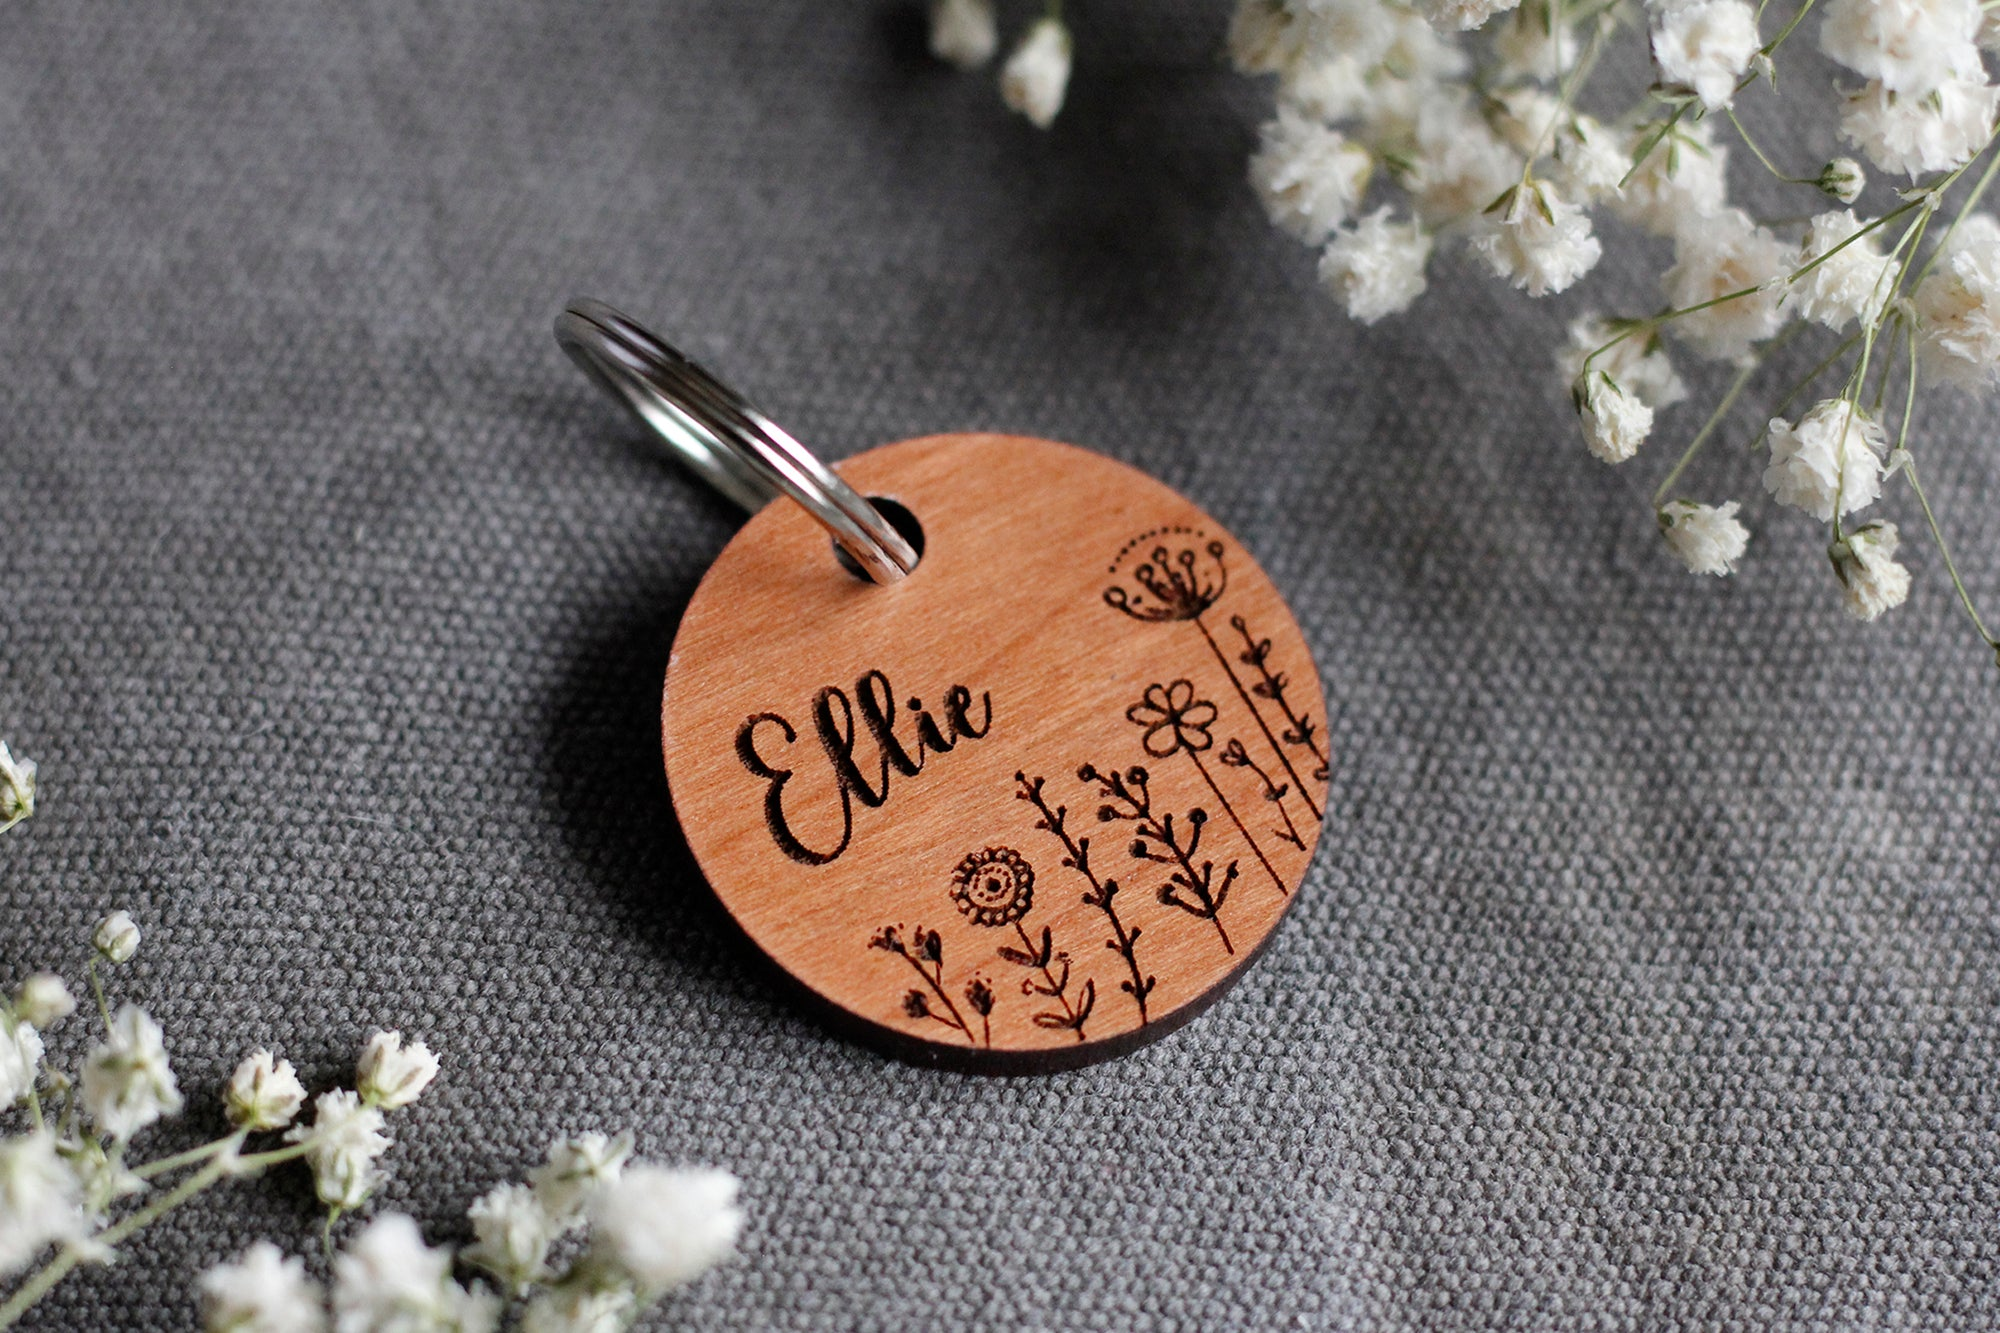 Flowers Wooden Dog ID Tag  FRONT: Engraved Dog Name & Flowers BACK: Your telephone number (optional)